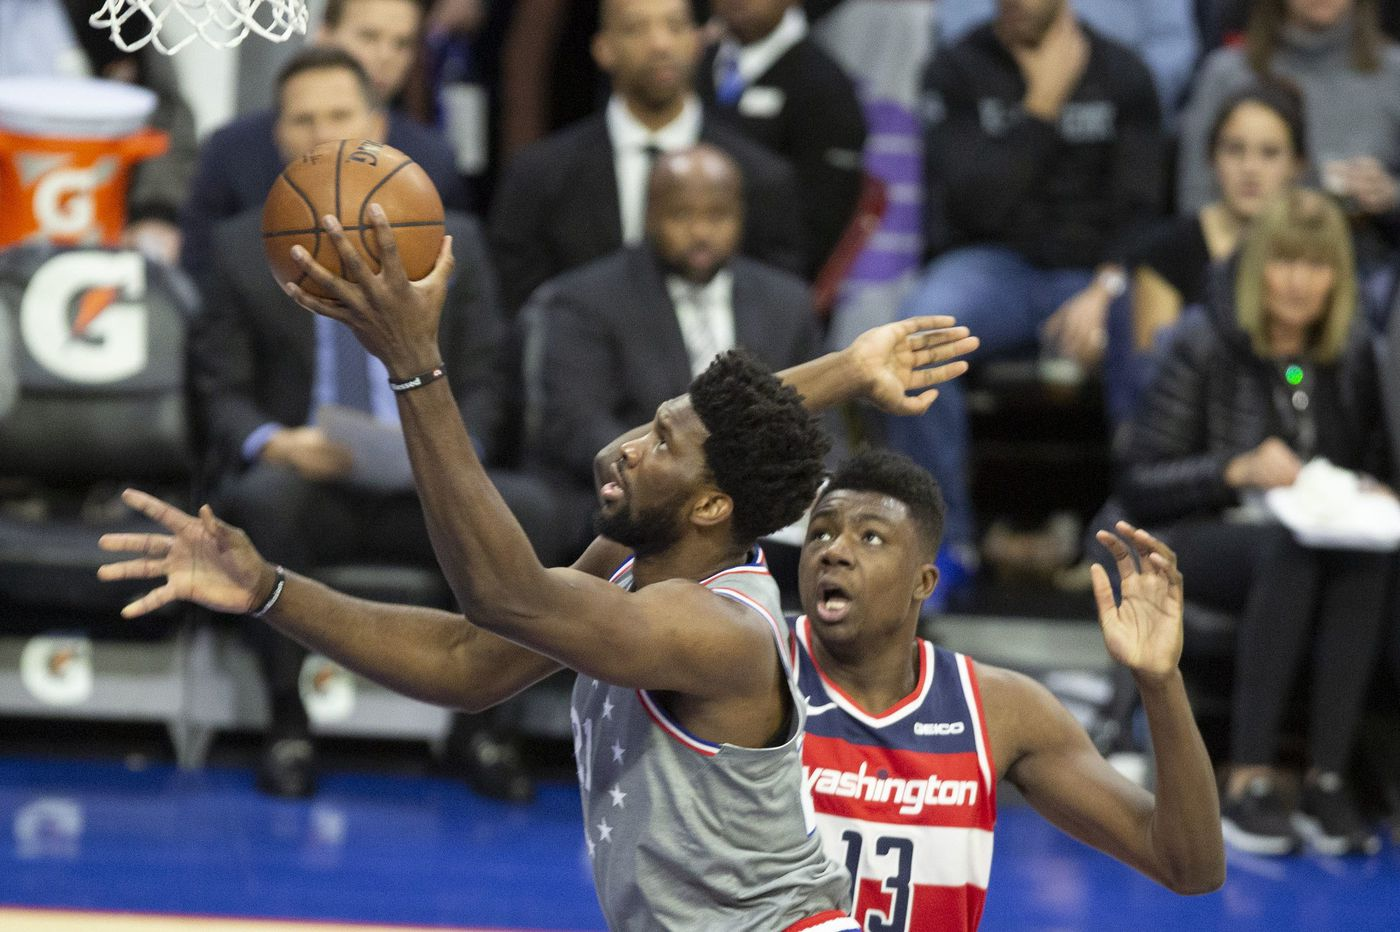 Joel Embiid, Ben Simmons shine in Sixers' blowout victory over Wizards